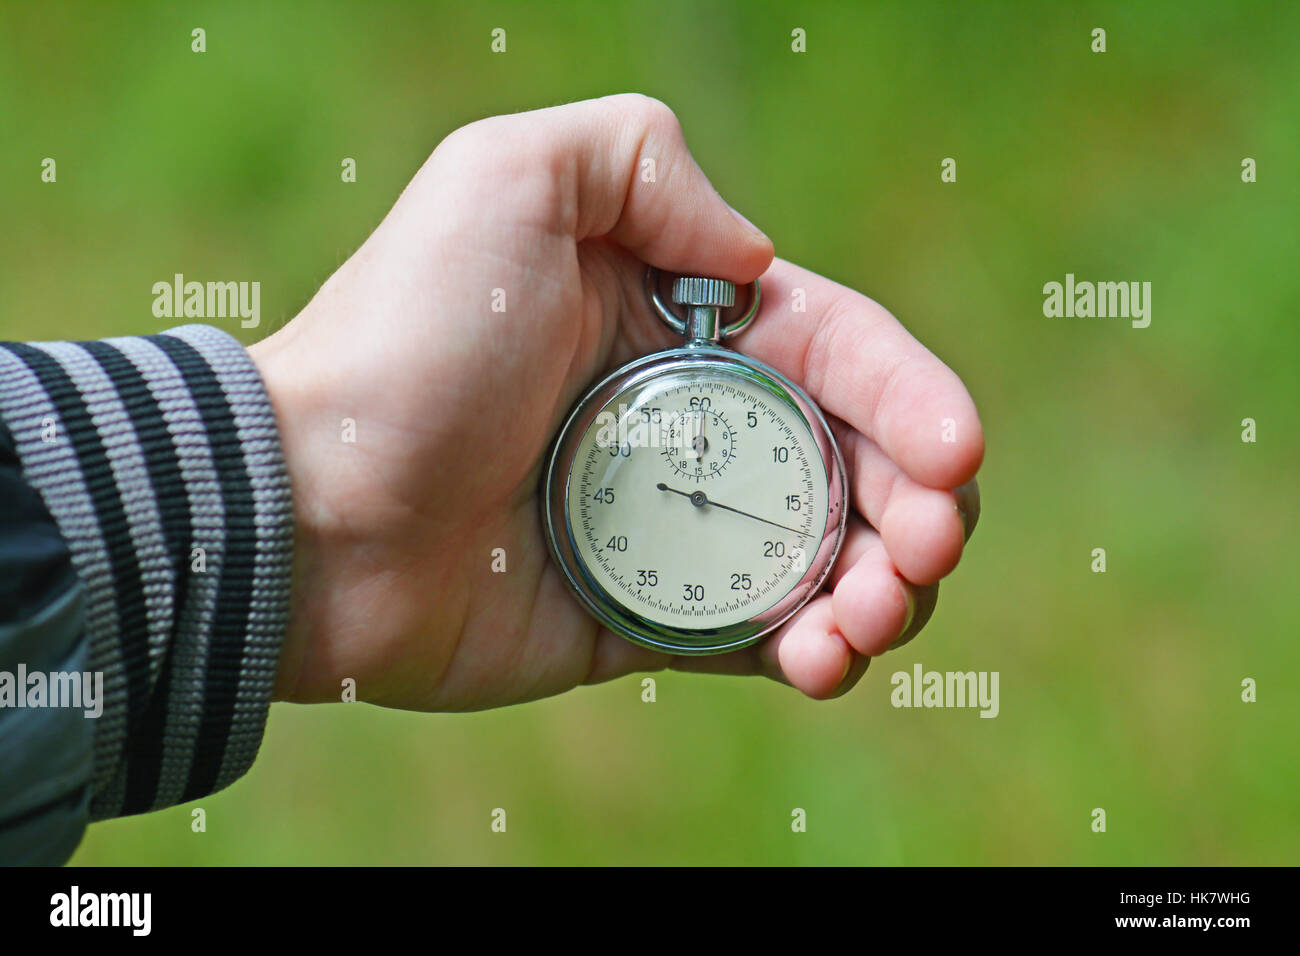 Stop watch in a hand - Stock Image